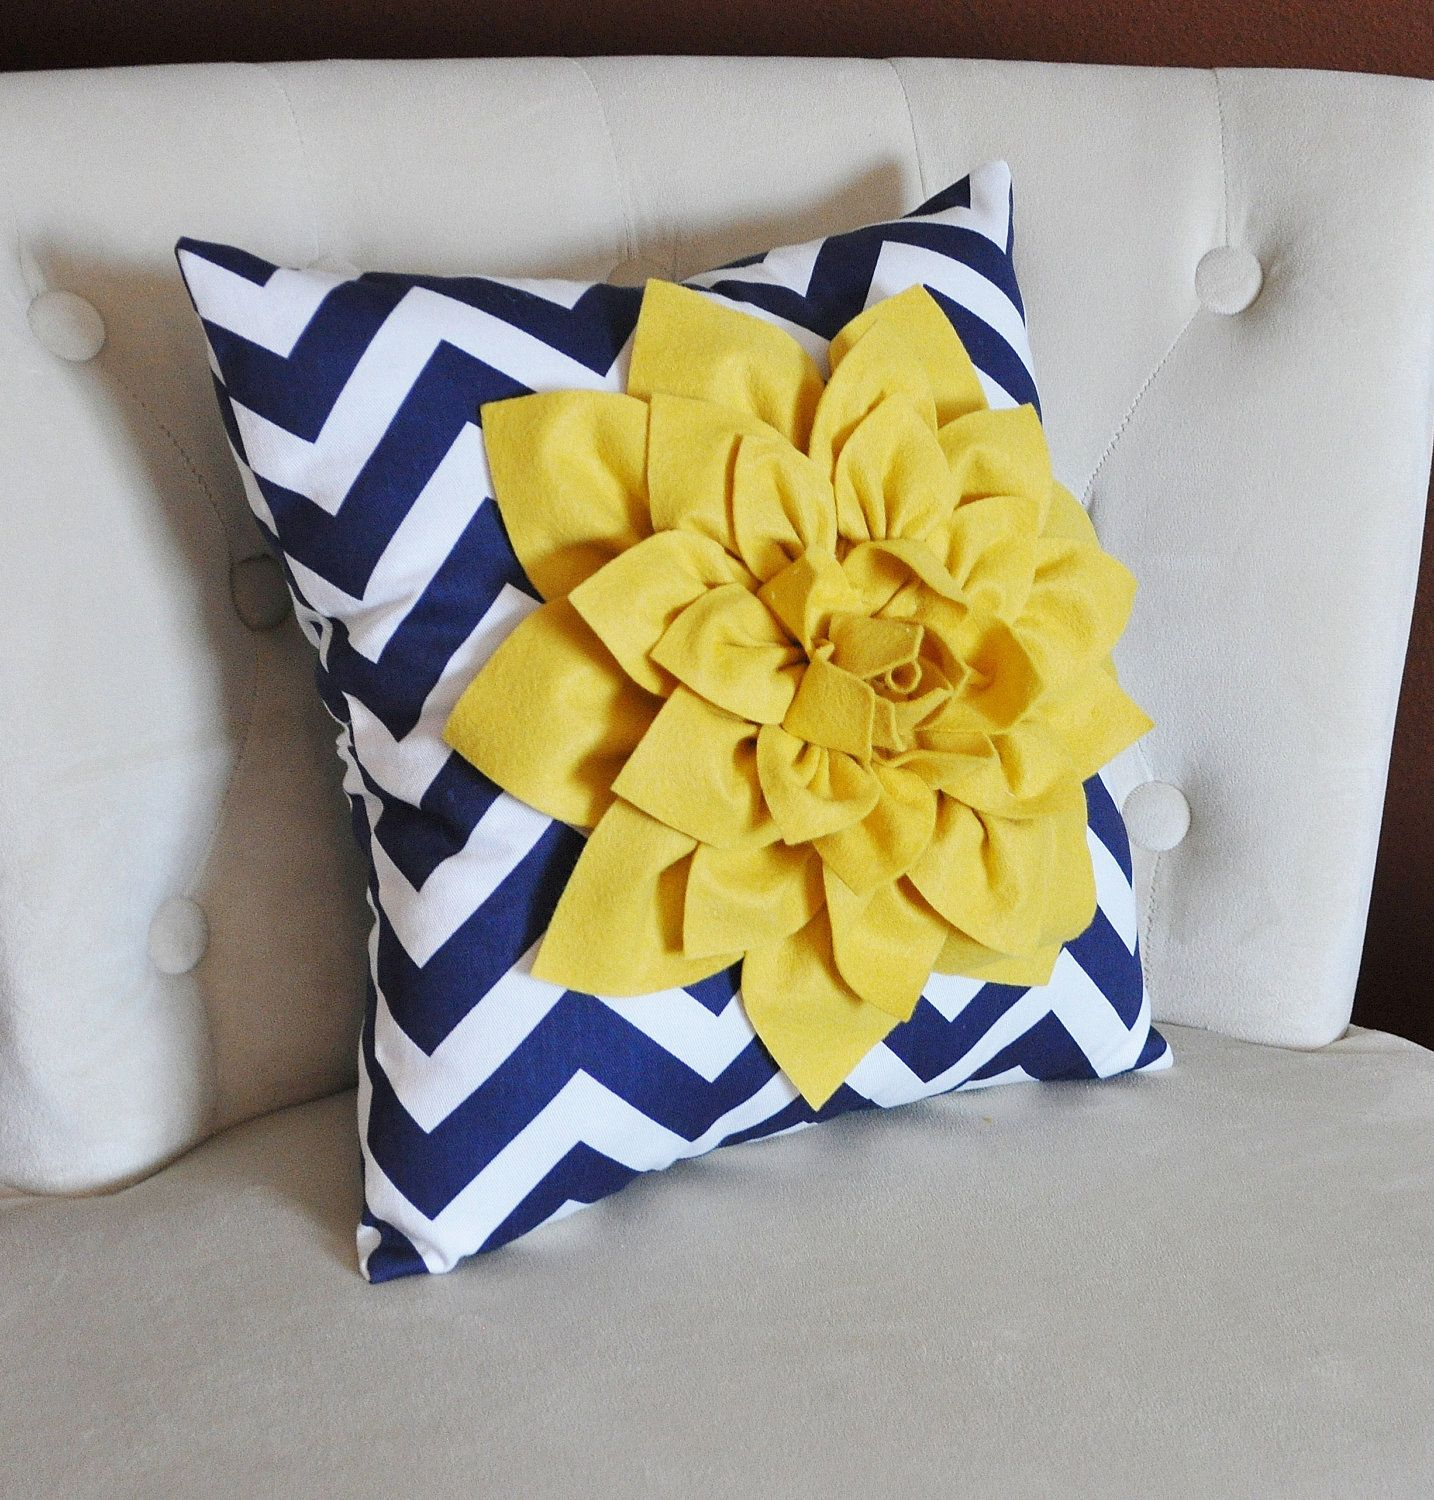 Decorative pillows with blue brown and yellow - Mellow Yellow Dahlia On Navy And White Zigzag Pillow Chevron Pillow